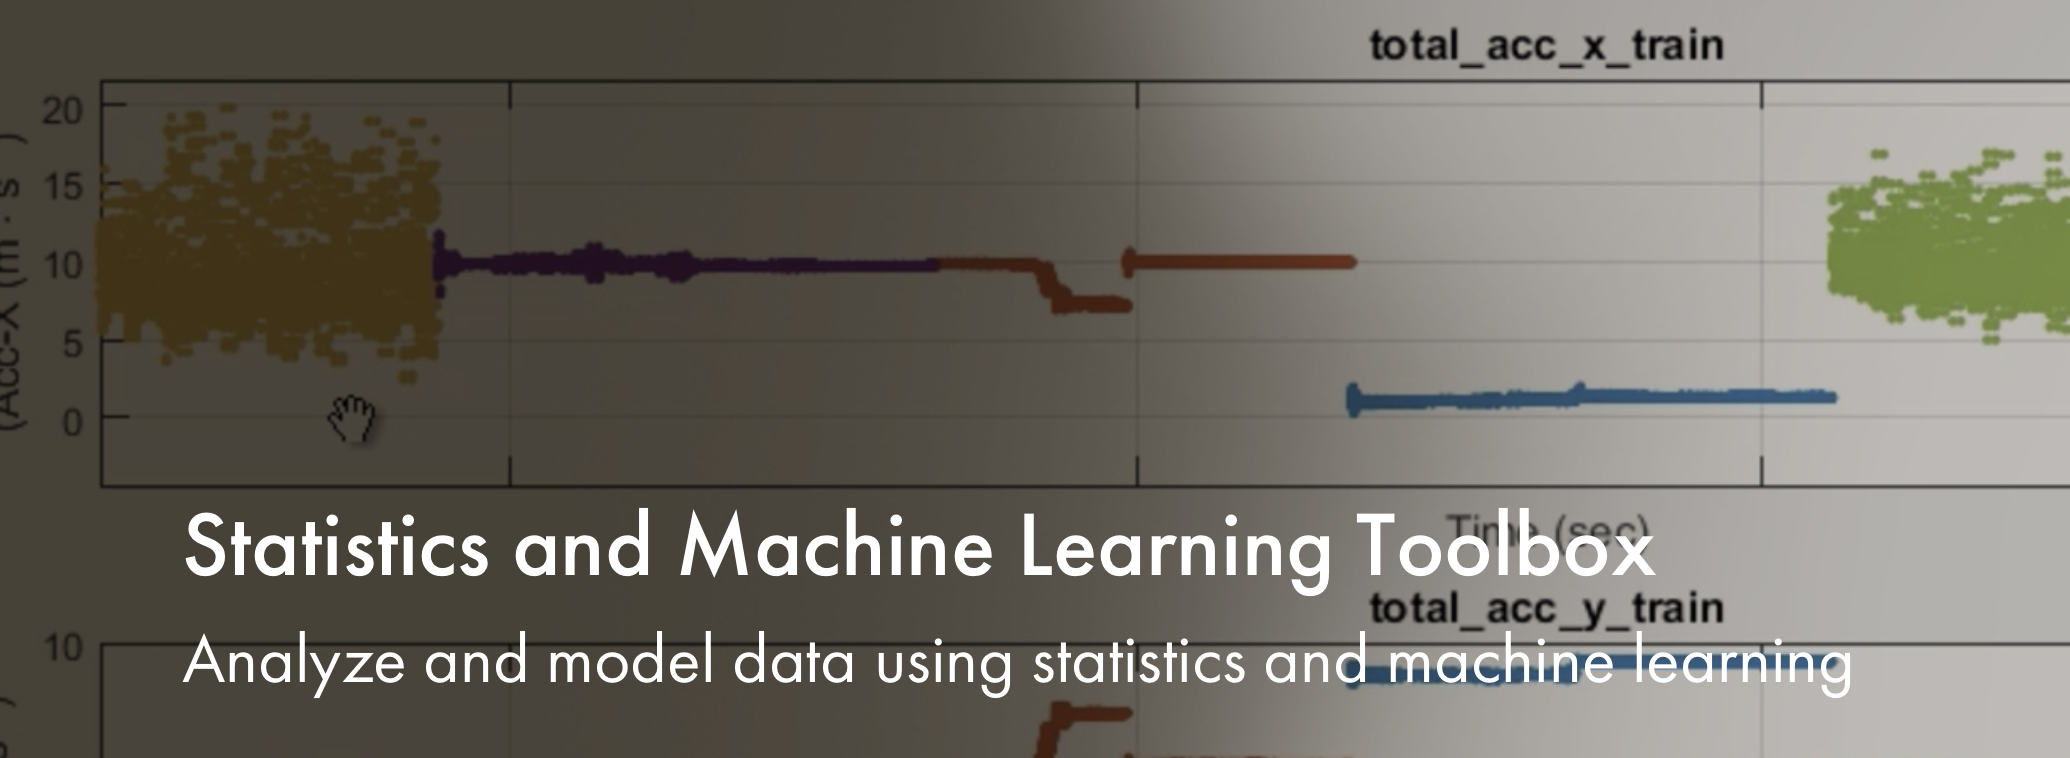 statistics and machine learning toolbox